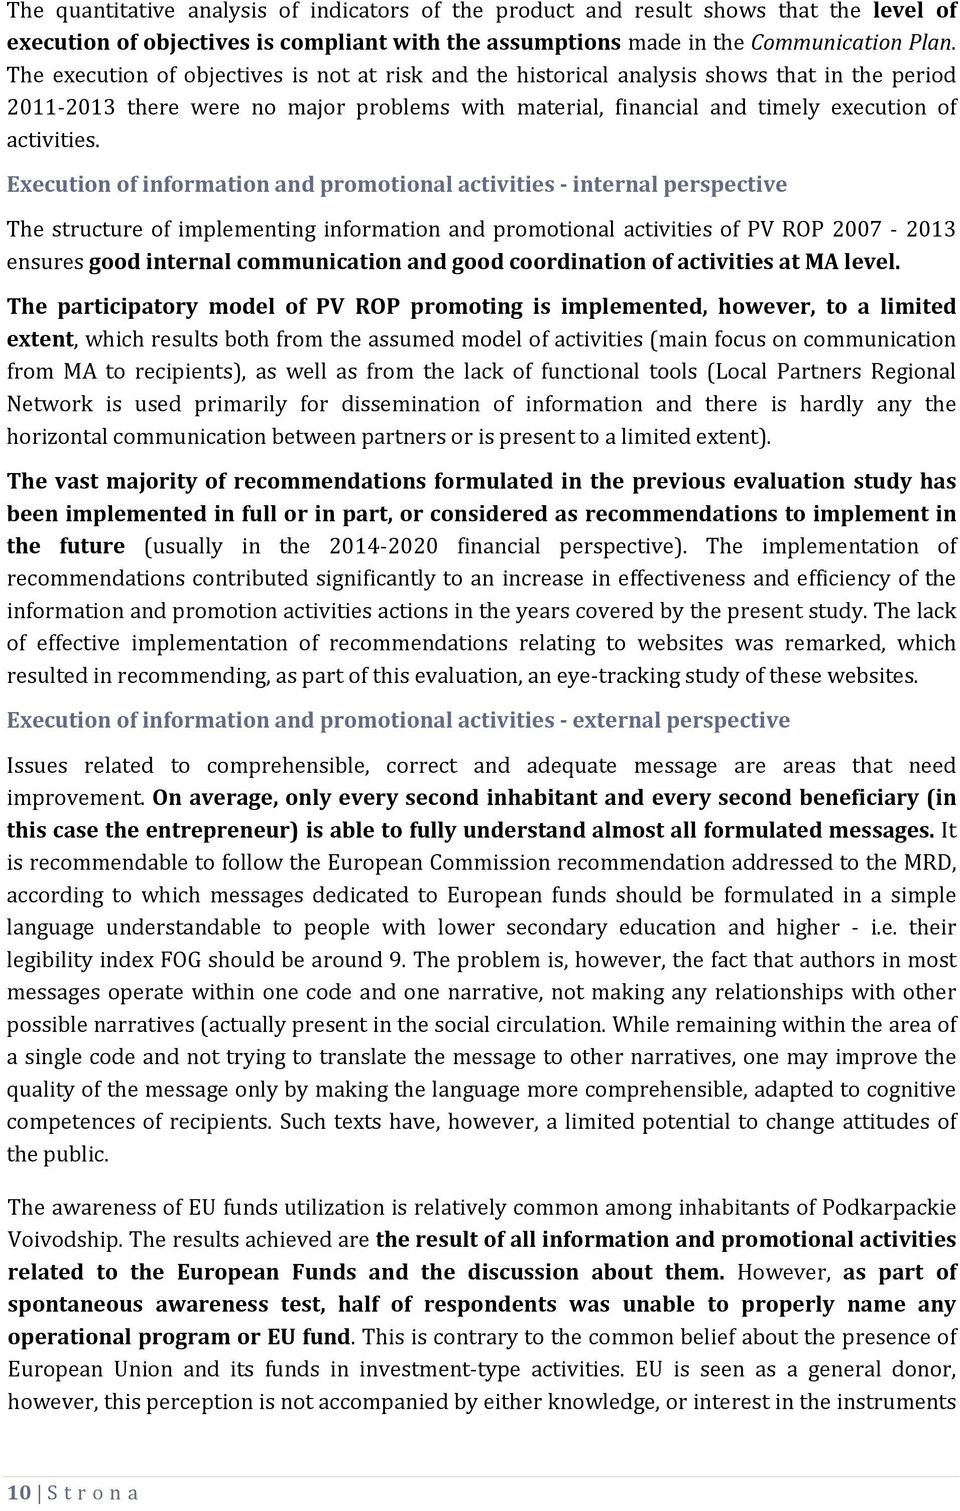 Execution of information and promotional activities - internal perspective The structure of implementing information and promotional activities of PV ROP 2007-2013 ensures good internal communication